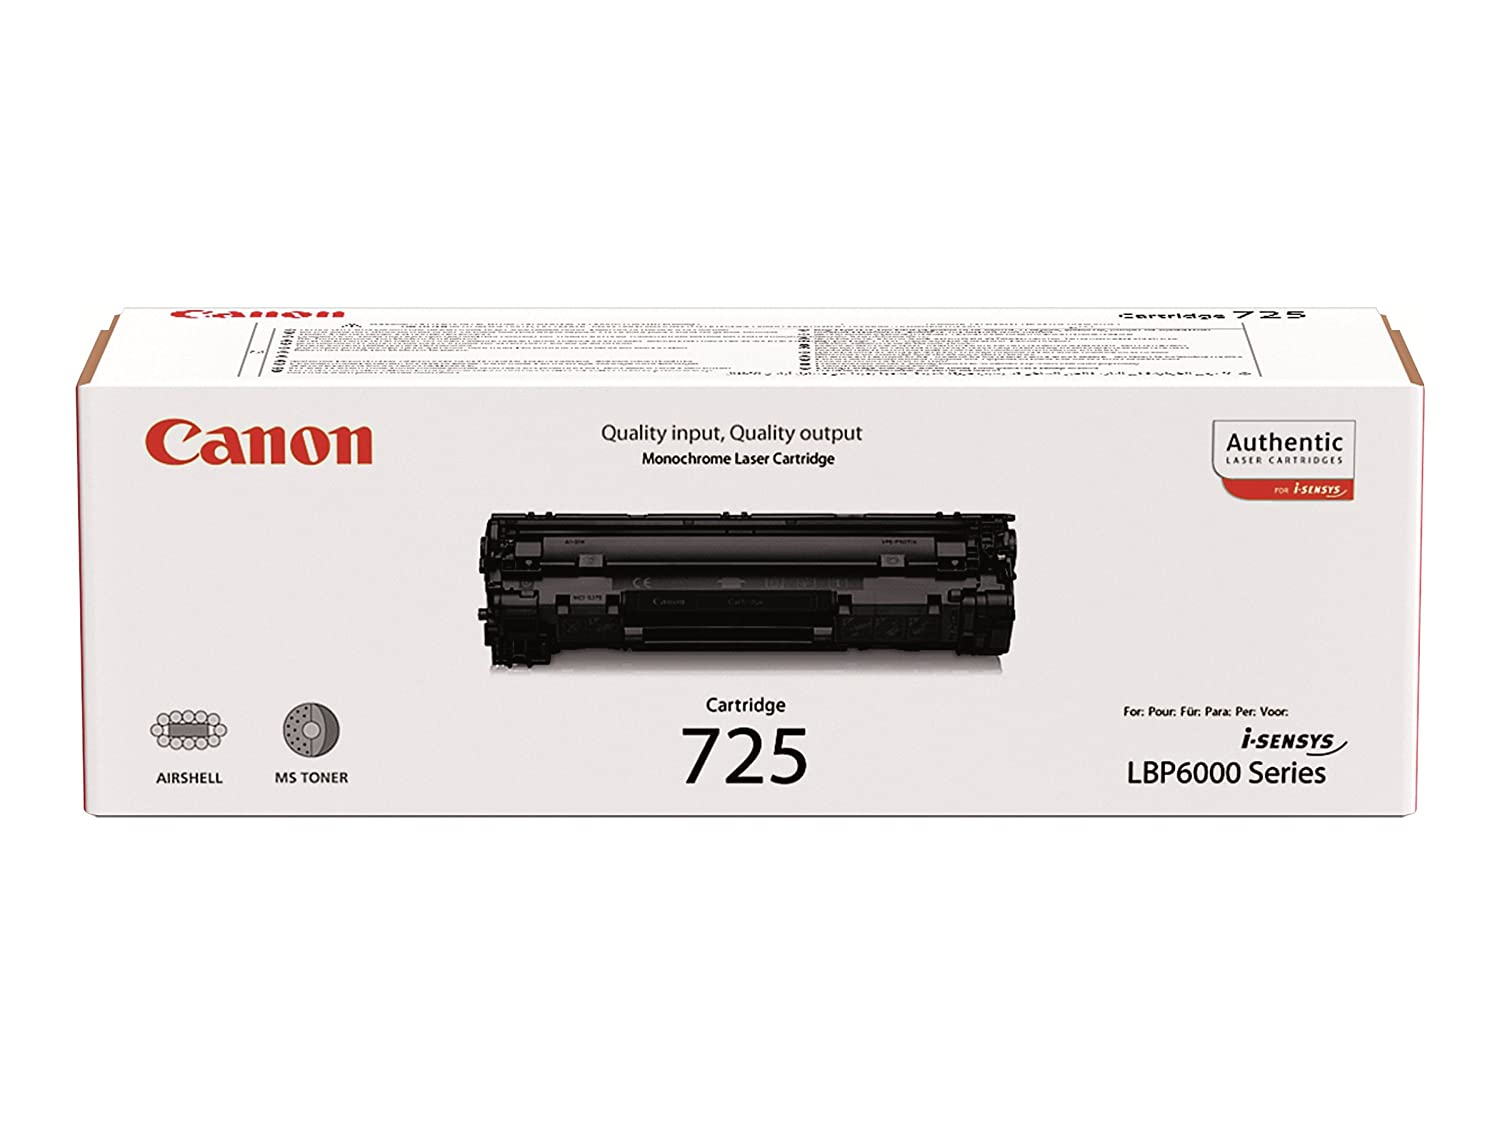 canon f 158 200 printer driver free download